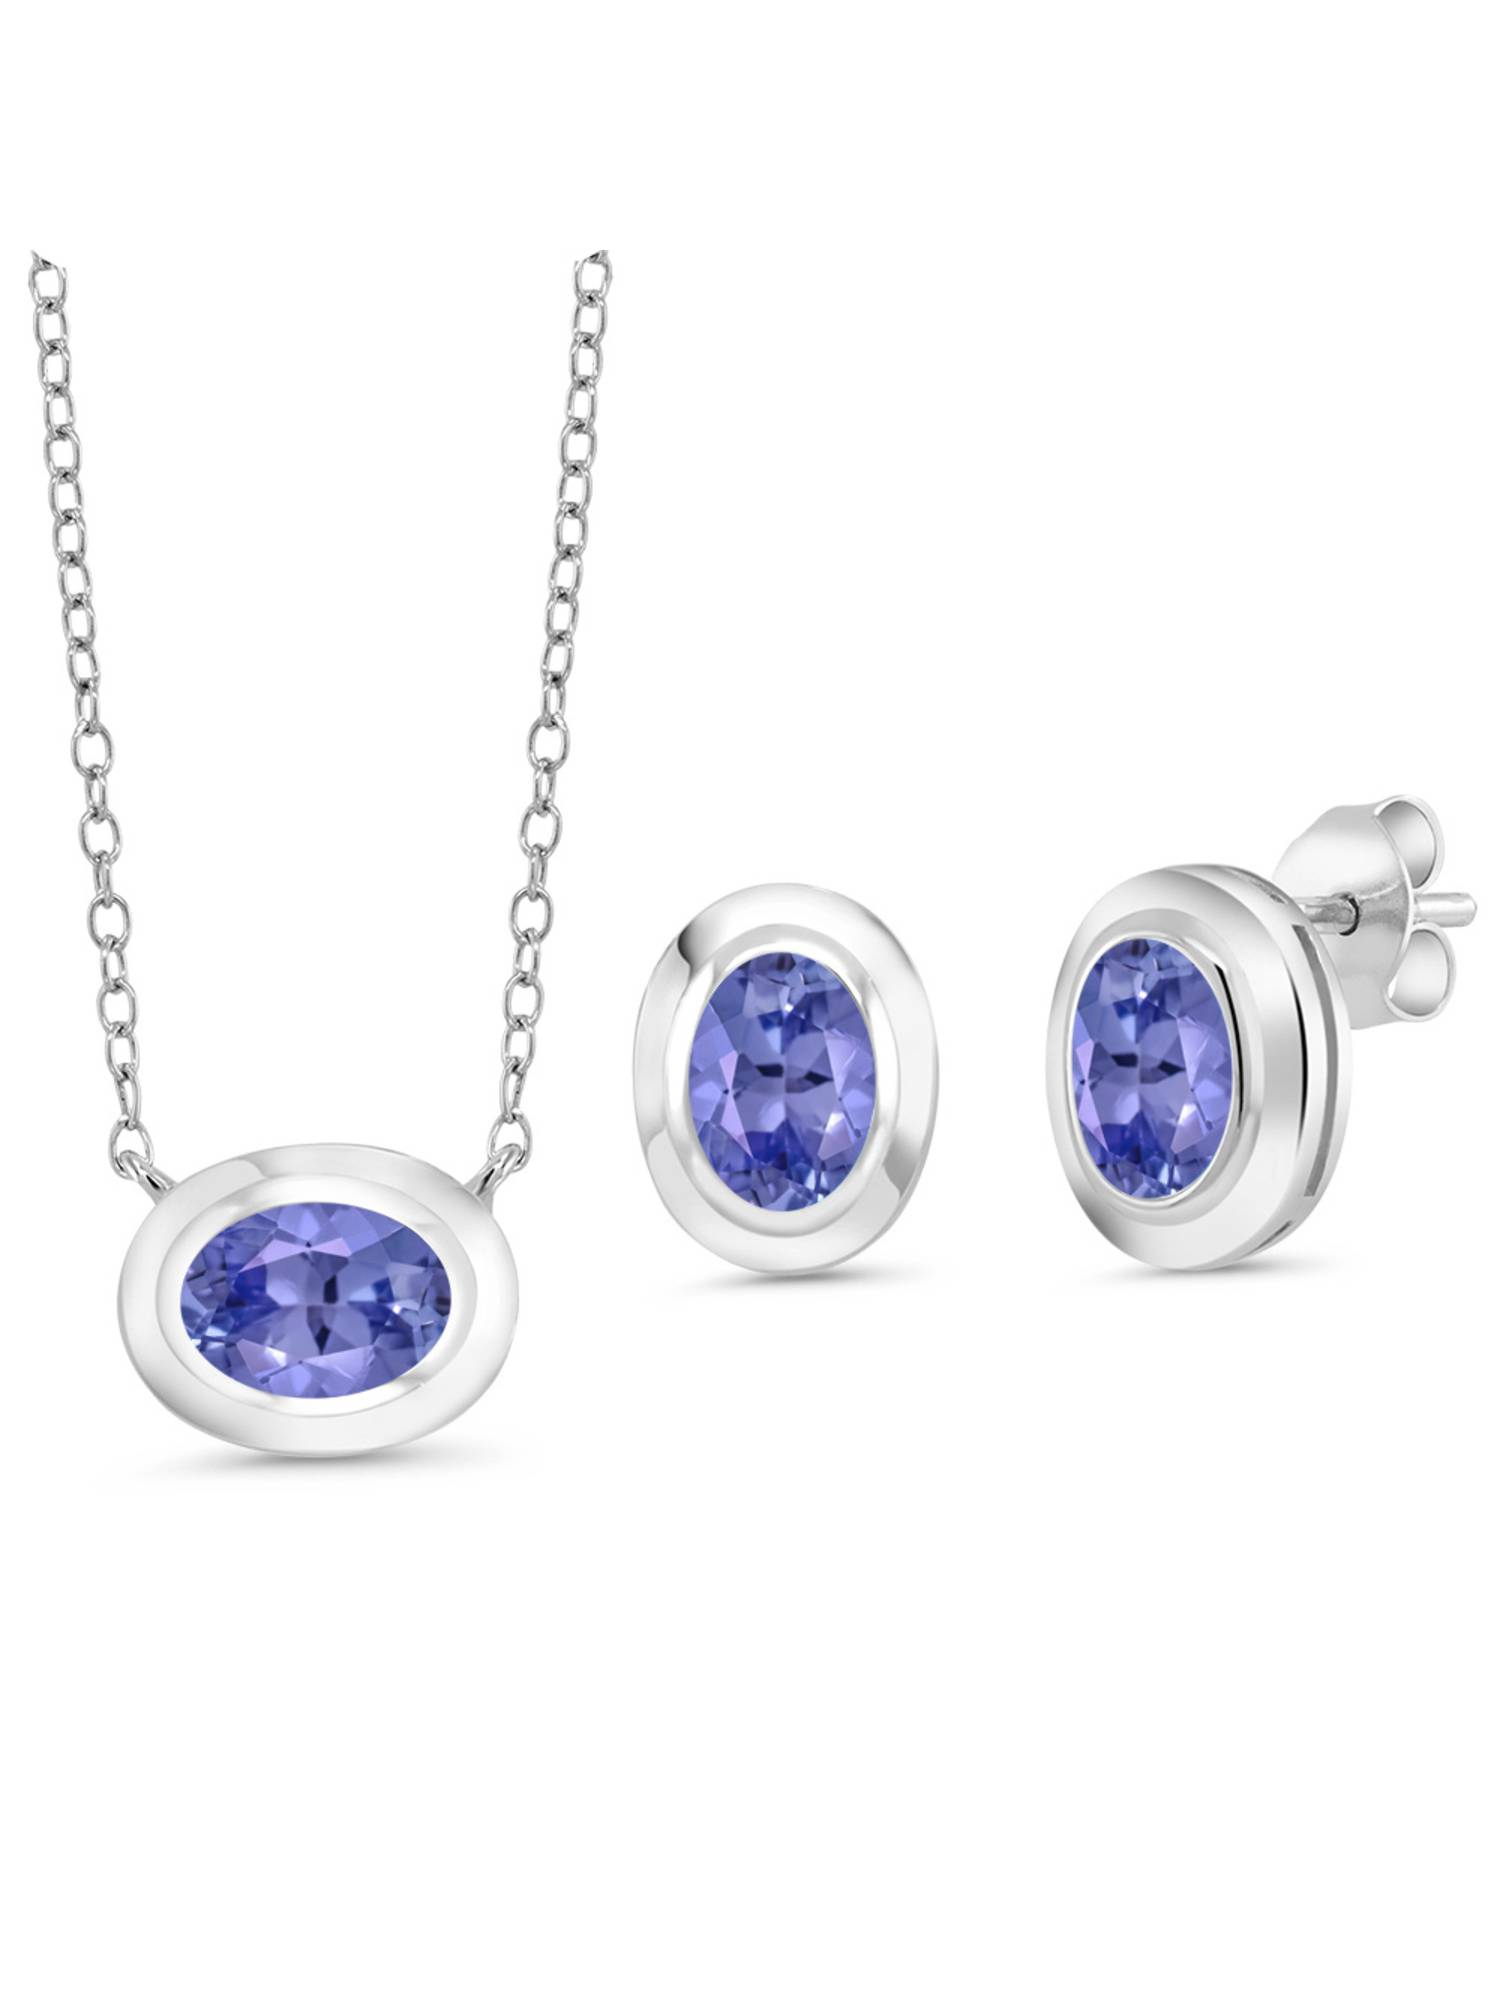 2.25 Ct Oval Blue Tanzanite 925 Sterling Silver Pendant Earrings Set With Chain by